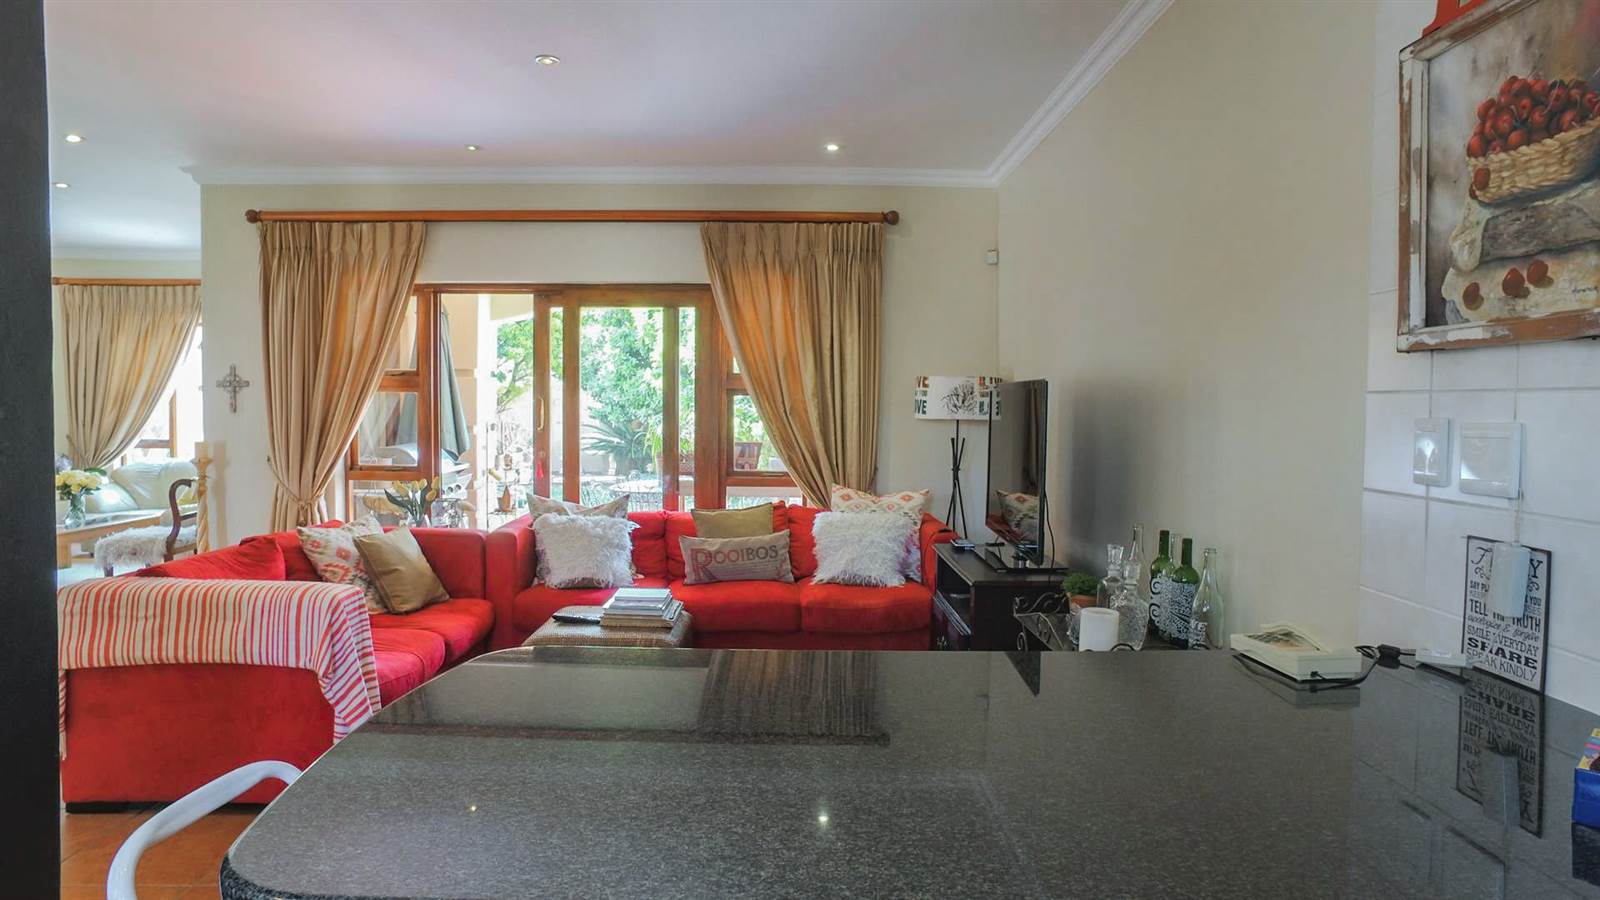 4 Bedroom Townhouse for sale in Mulbarton ENT0067436 : photo#16